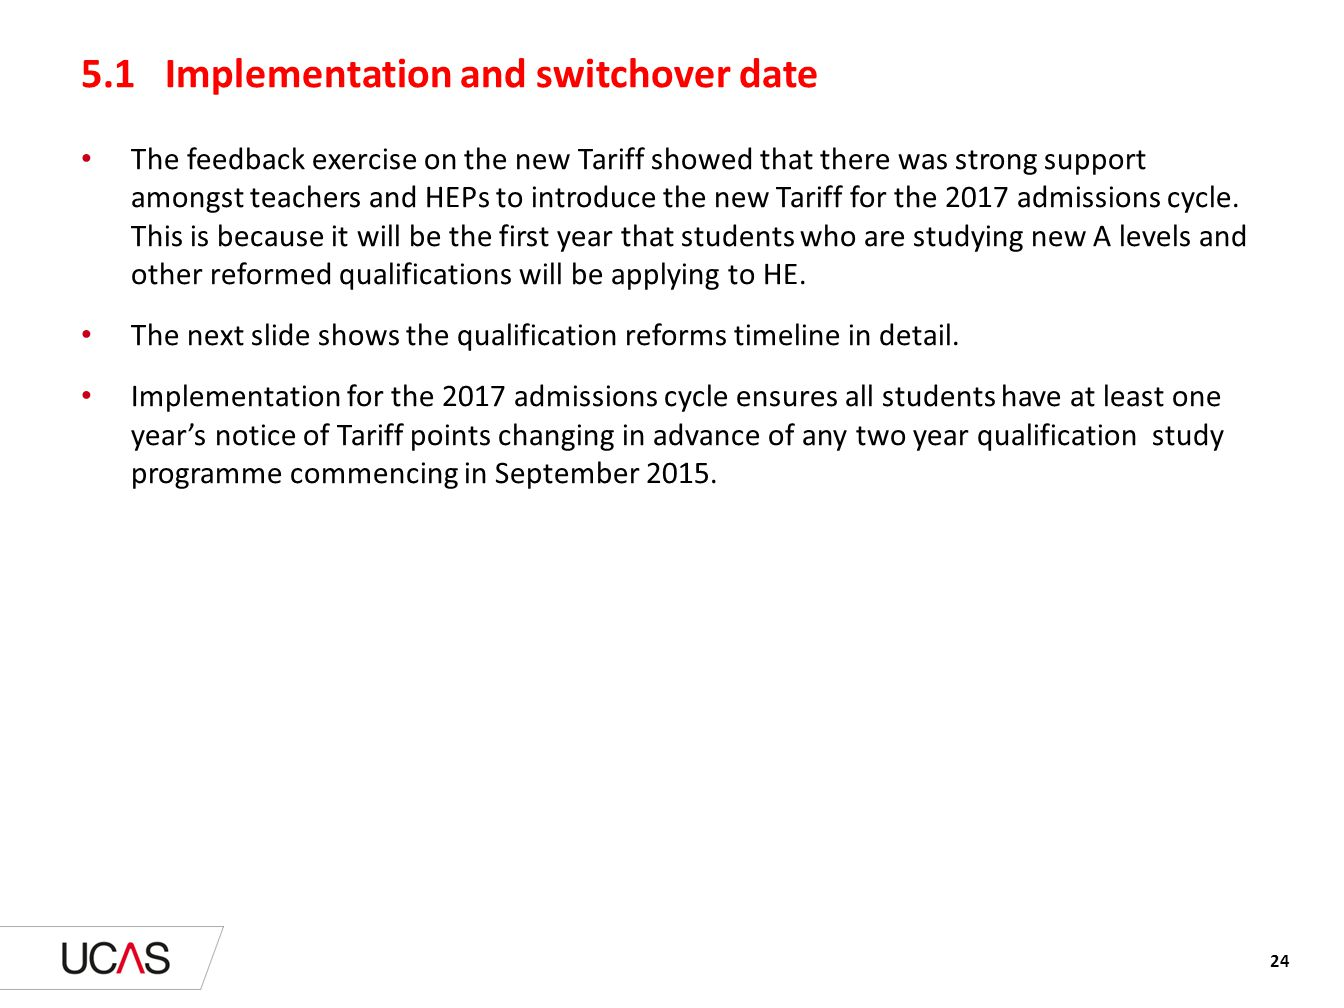 5.1 Implementation and switchover date